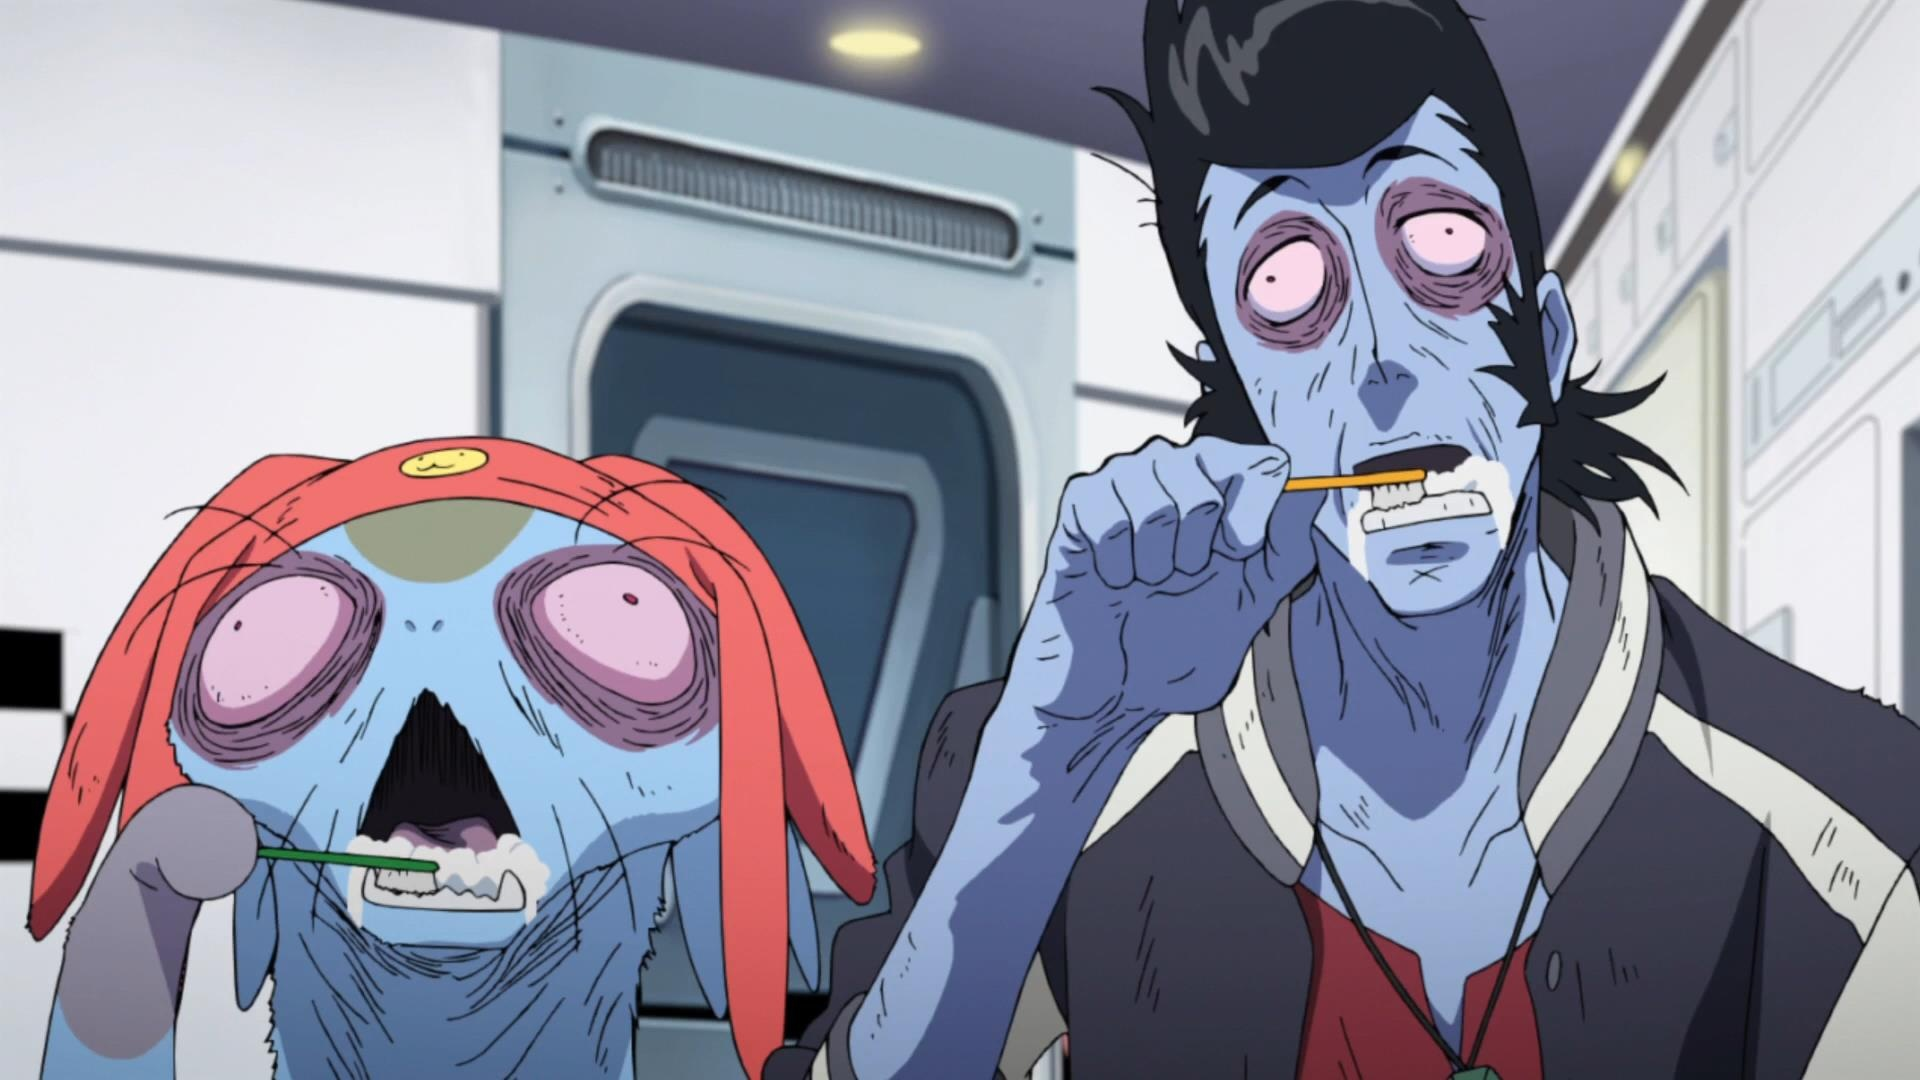 Space Dandy Wallpaper space dandy anime zombie hd wallpaper image picture photo